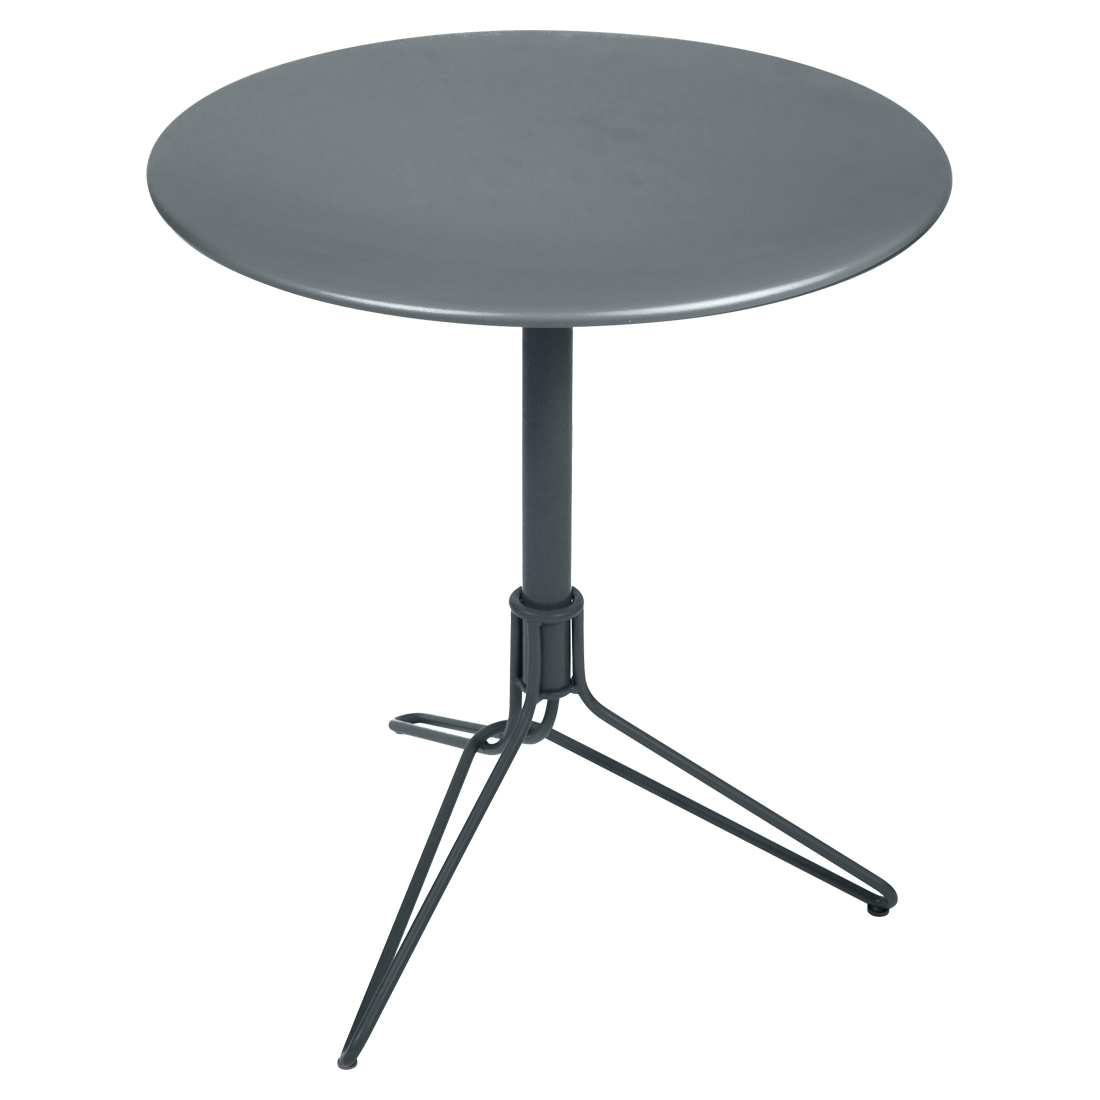 FLOWER / PEDESTAL TABLE Ø67 CM